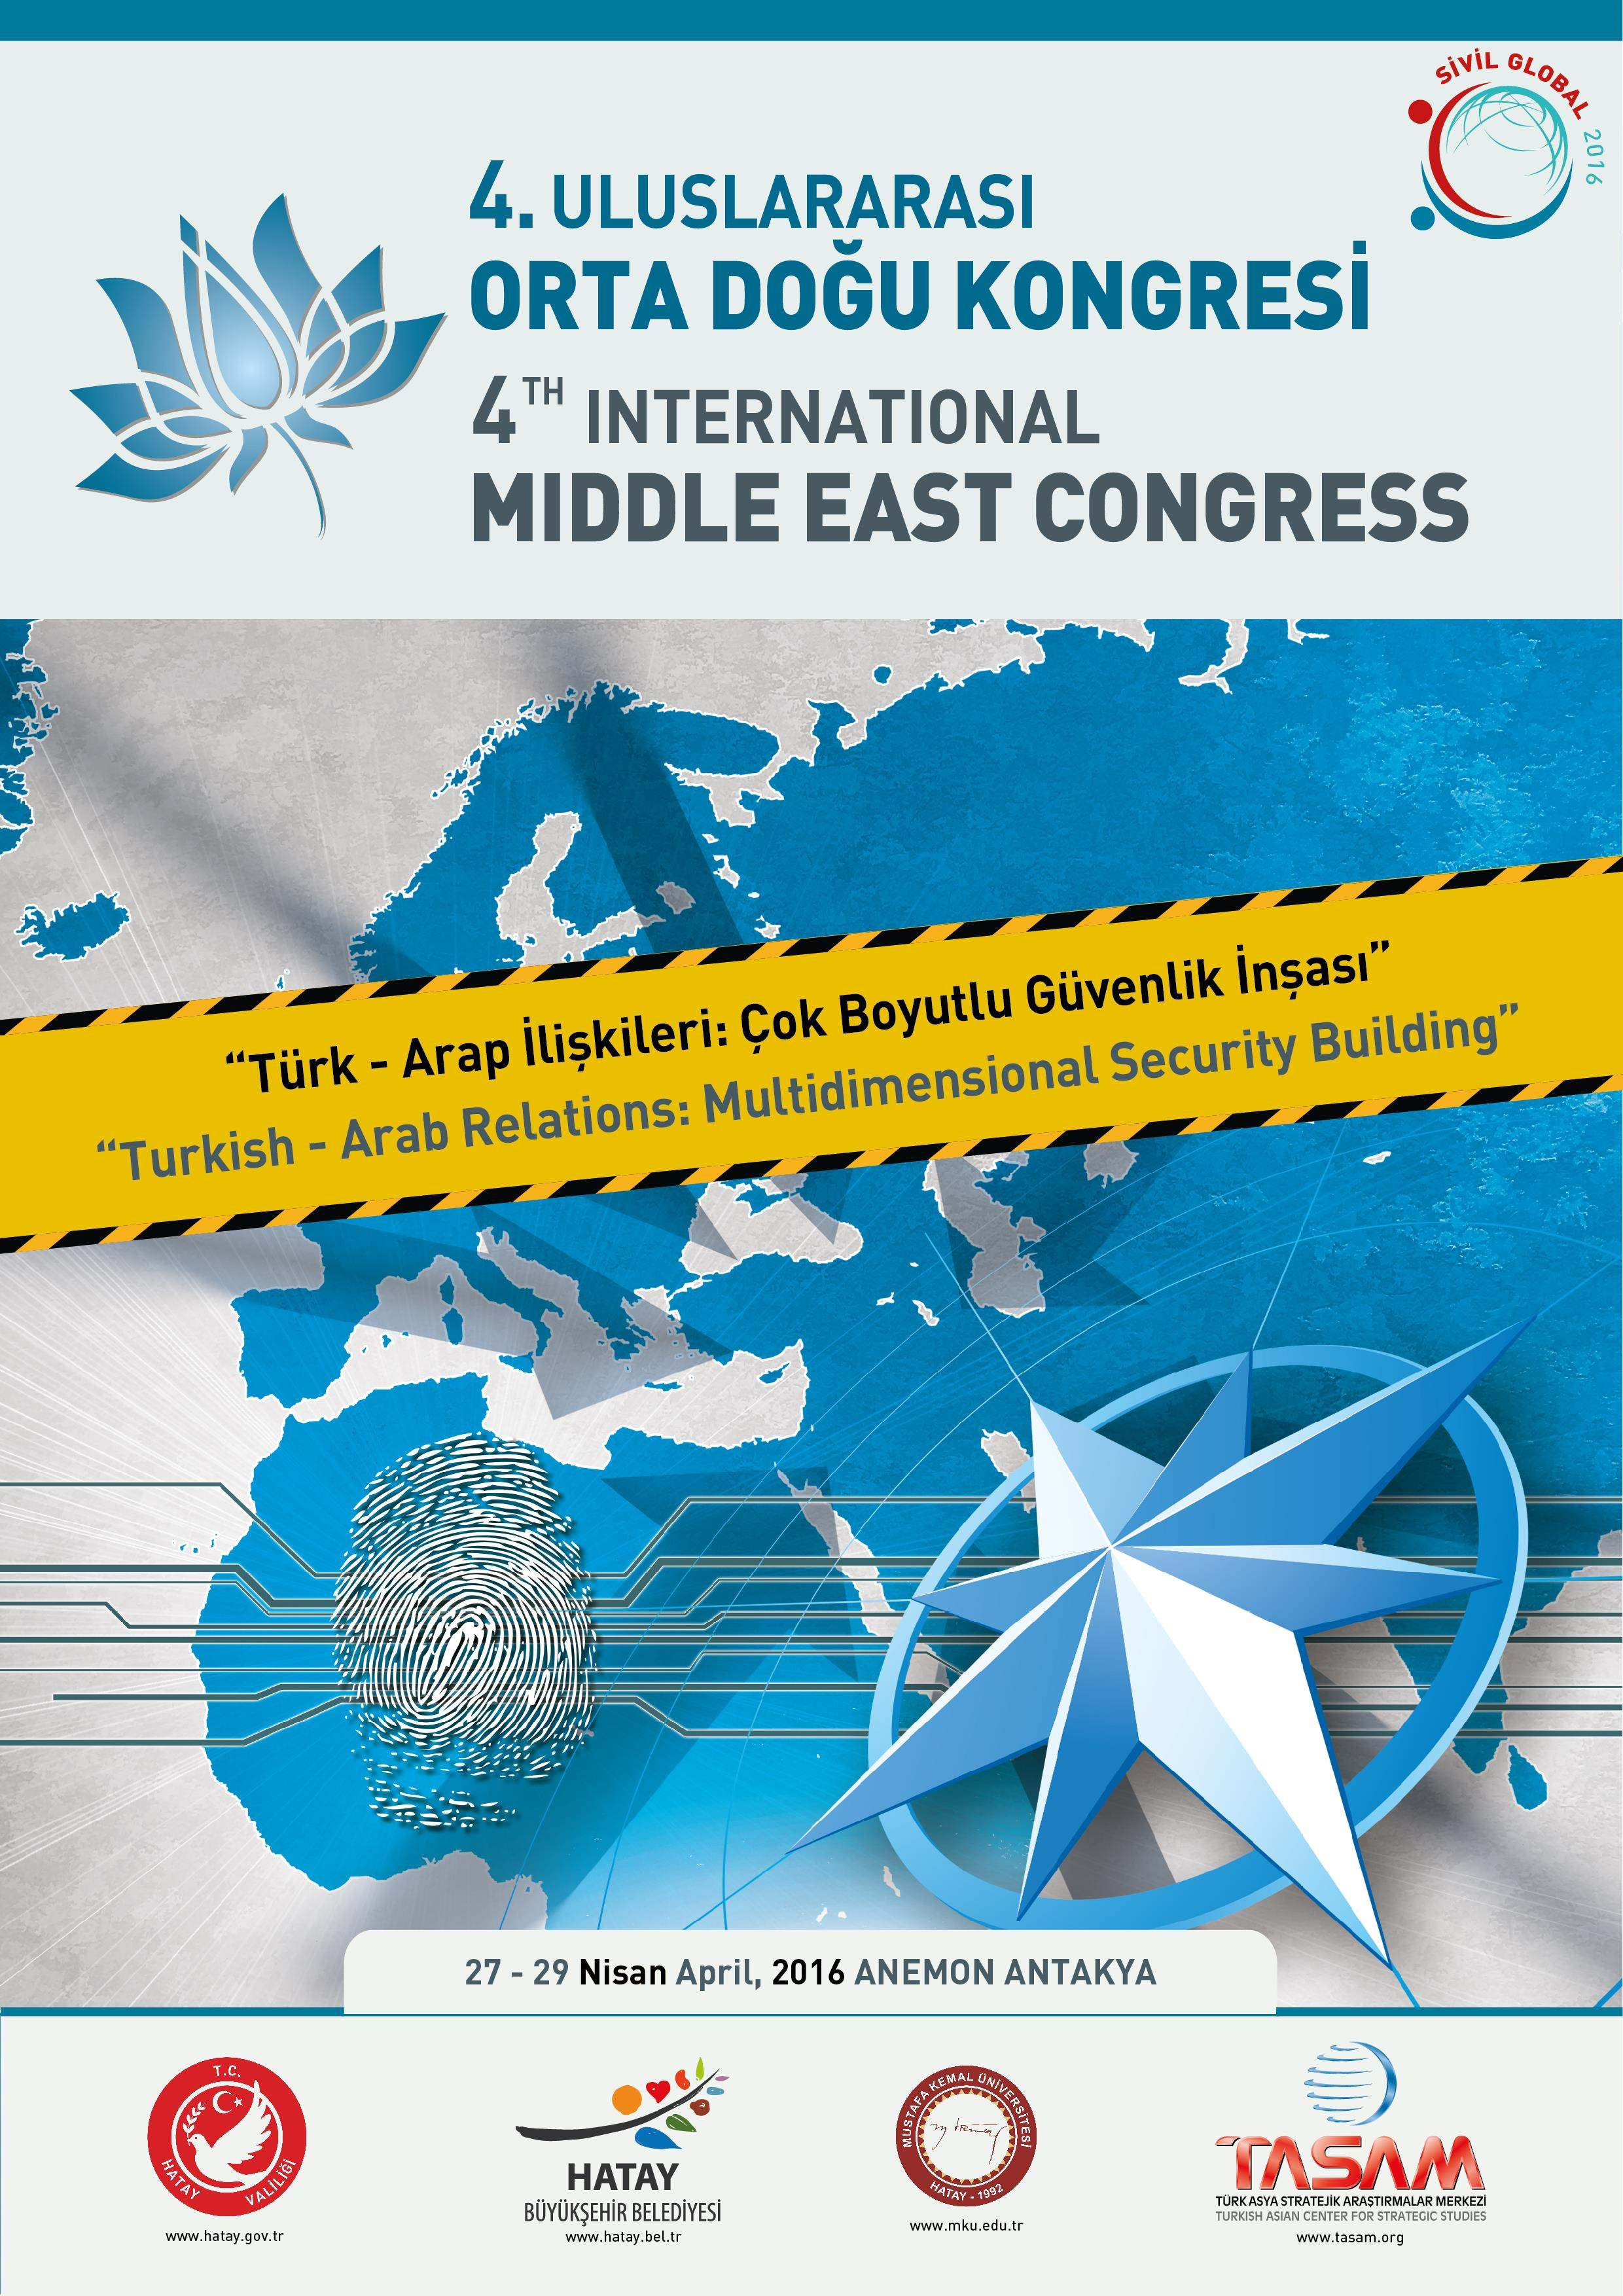 4th International Middle East Congress